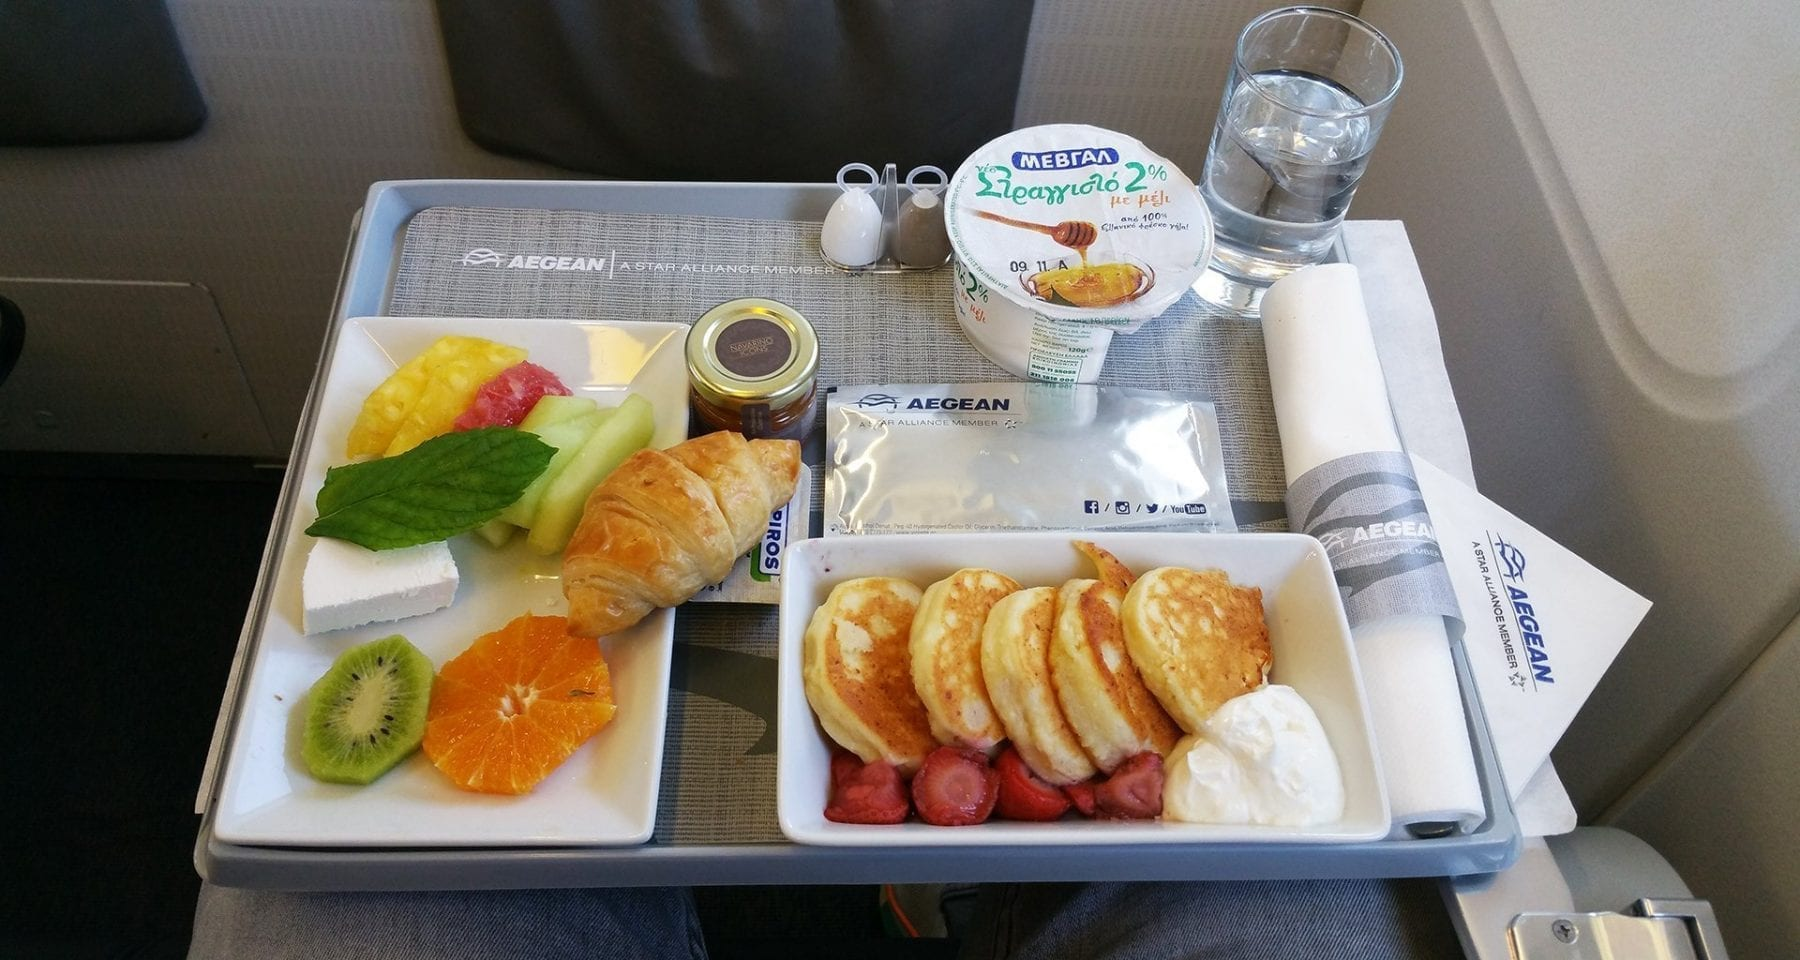 Aegean airlines meal in business class: pancakes